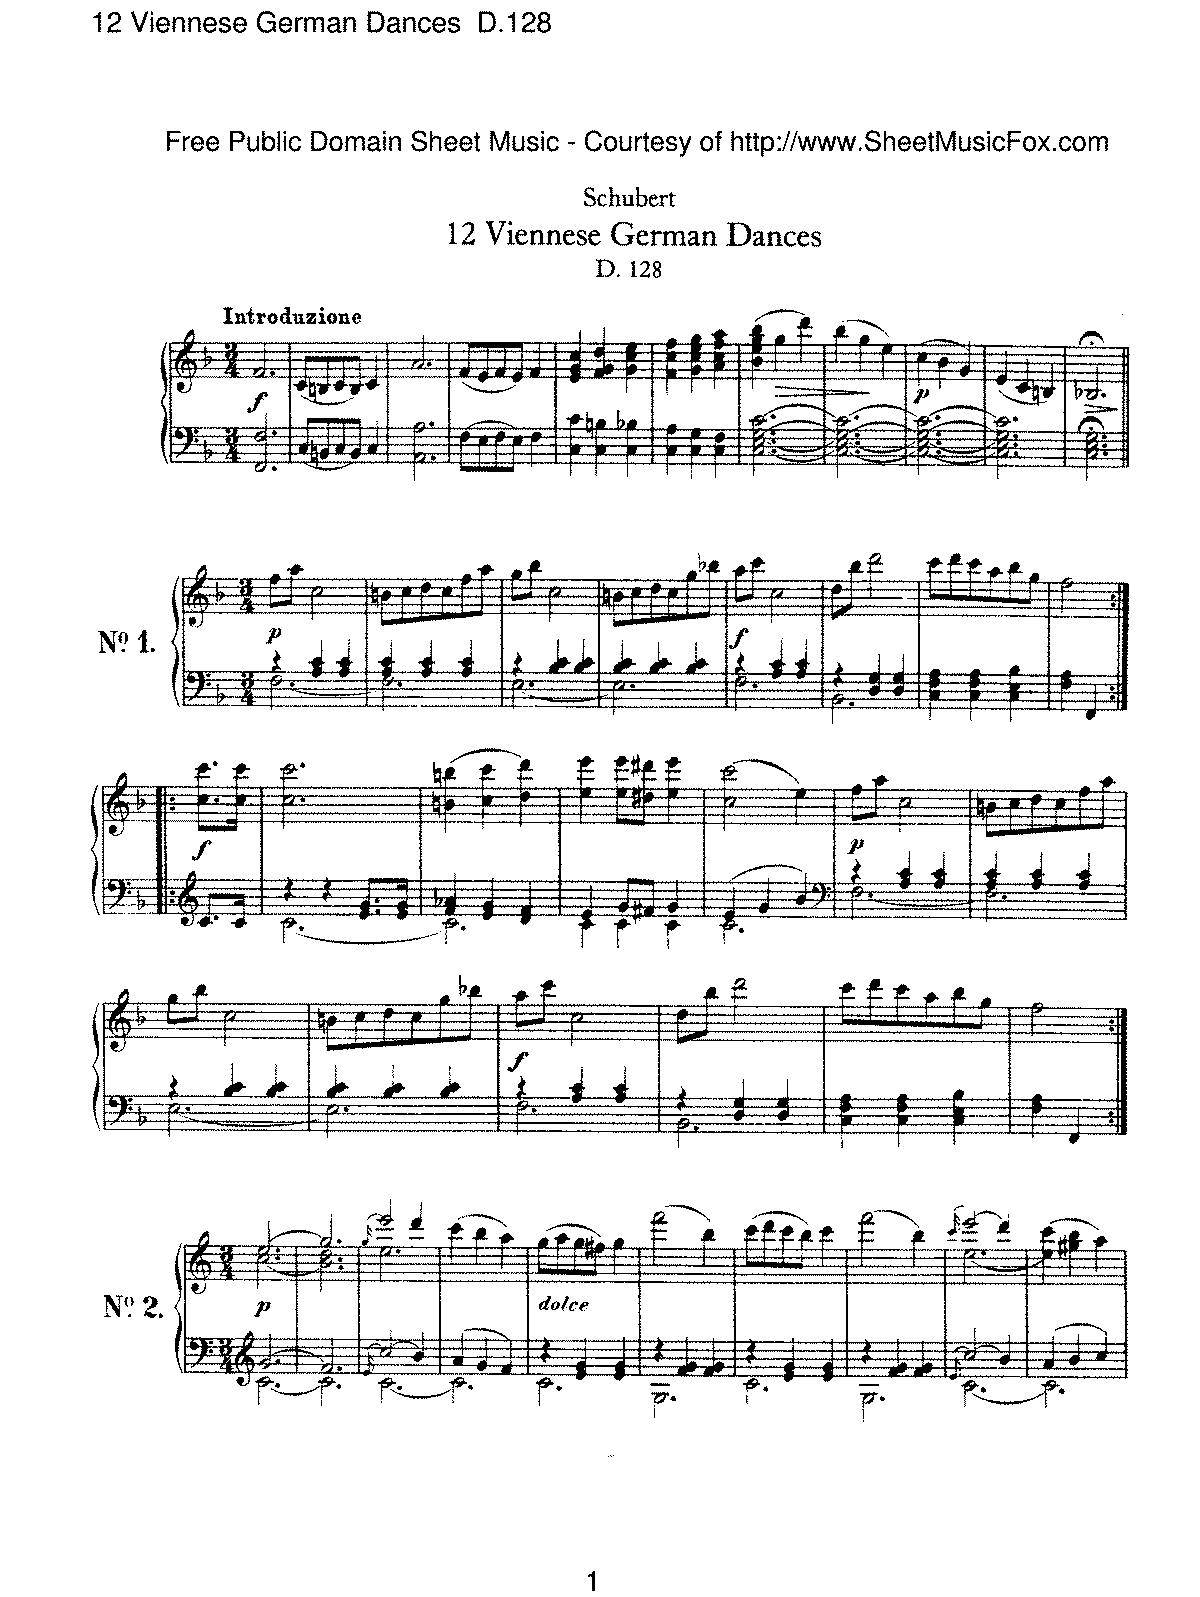 Schubert - 12 Viennese German Dances, D.128.pdf